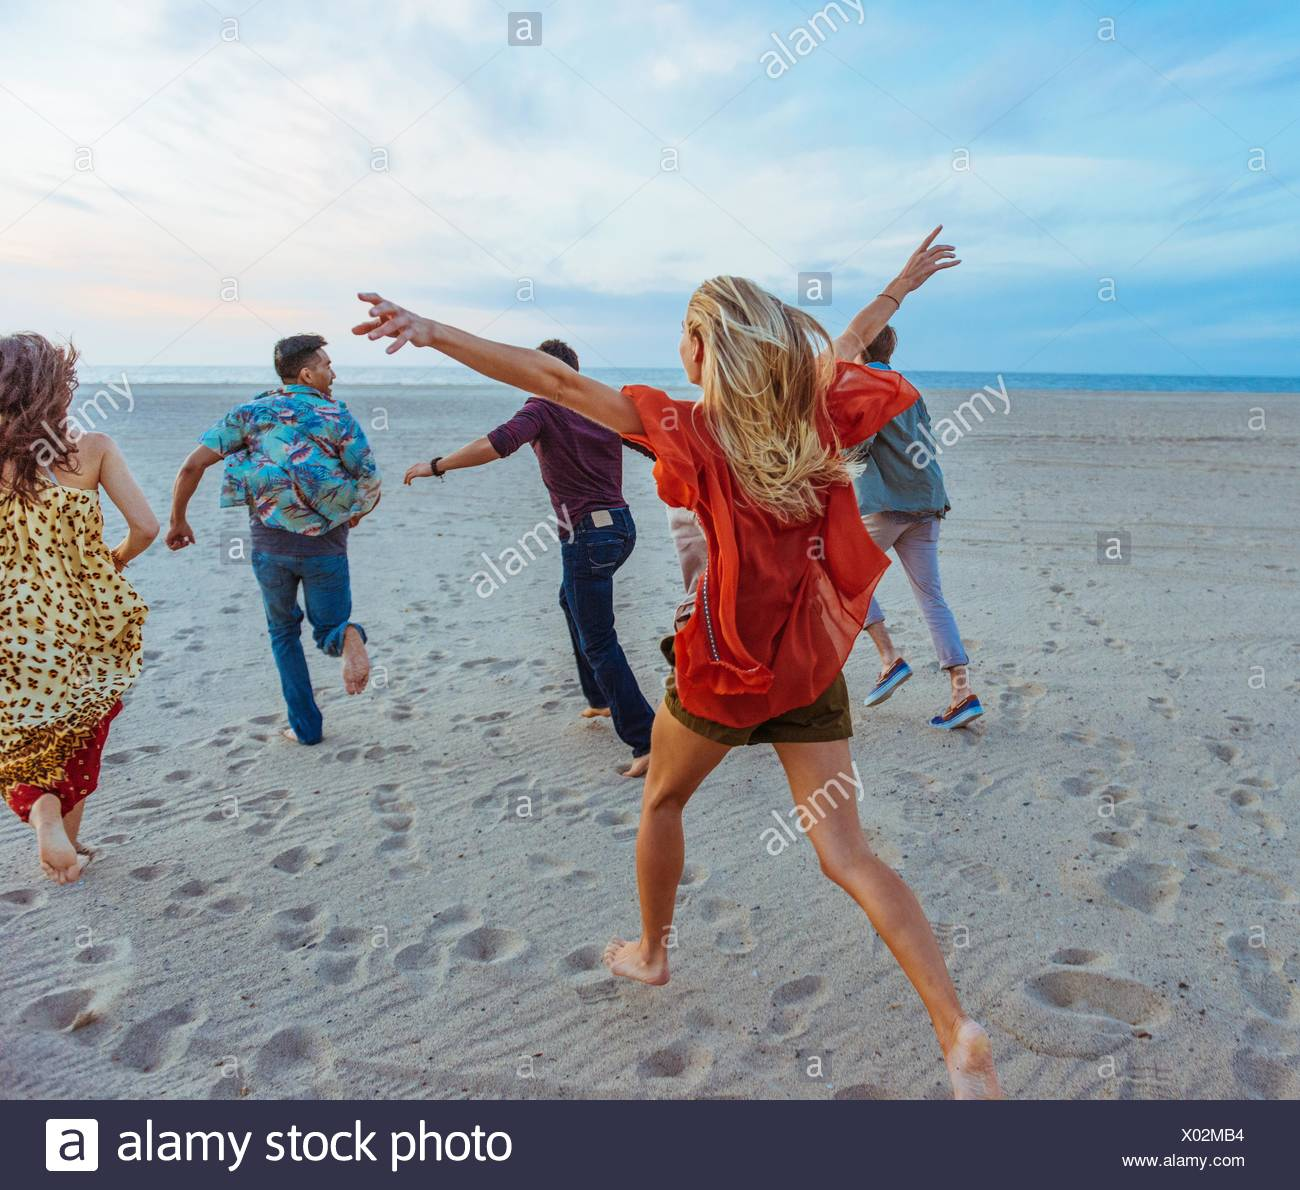 Group of friends walking along beach, young woman with arms in air, rear view - Stock Image